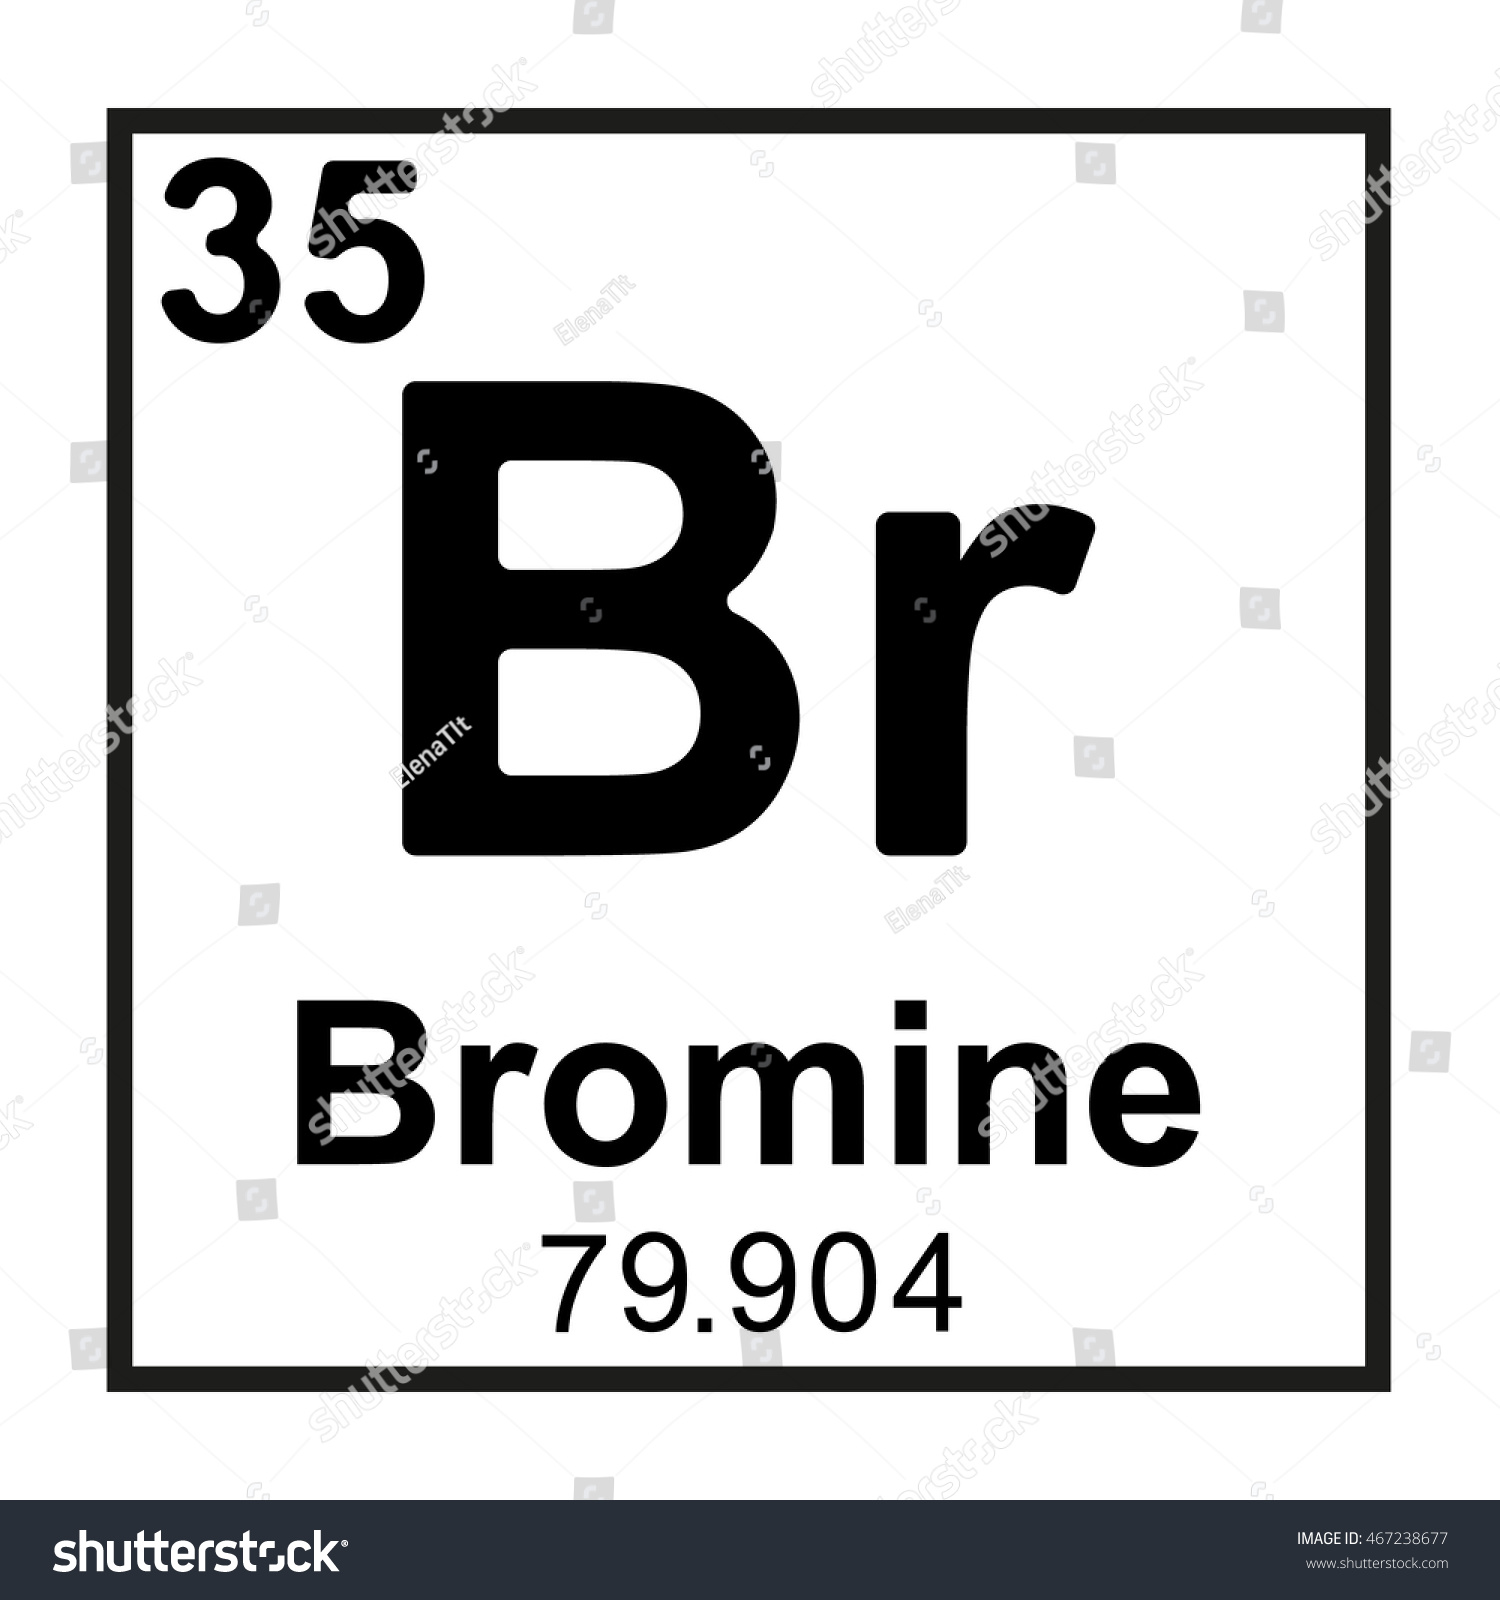 Periodic Table Element Bromine Stock Vector Royalty Free 467238677